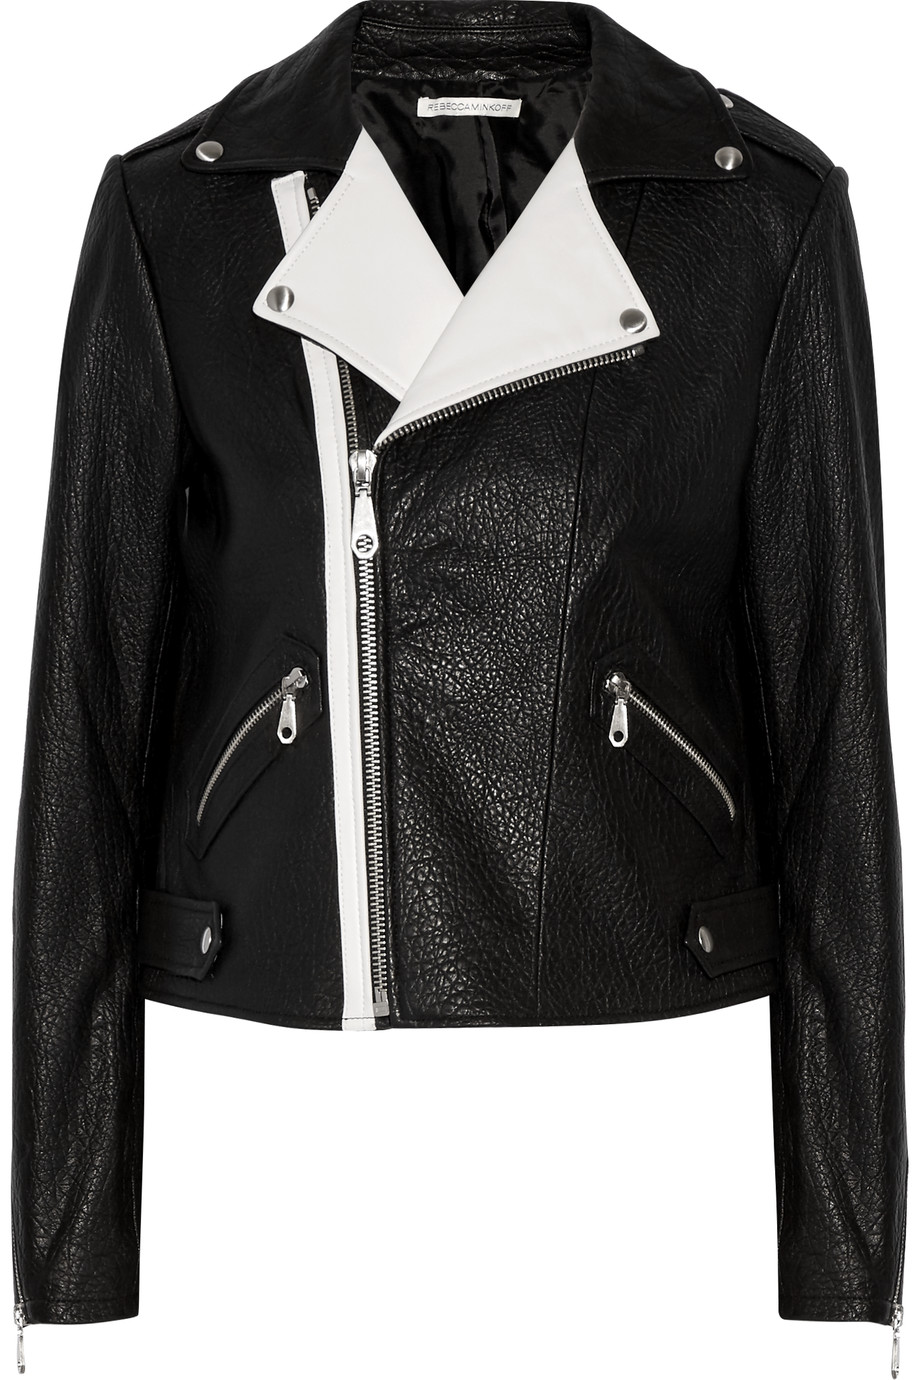 Leather jacket cost - Leather Jacket Cost 9